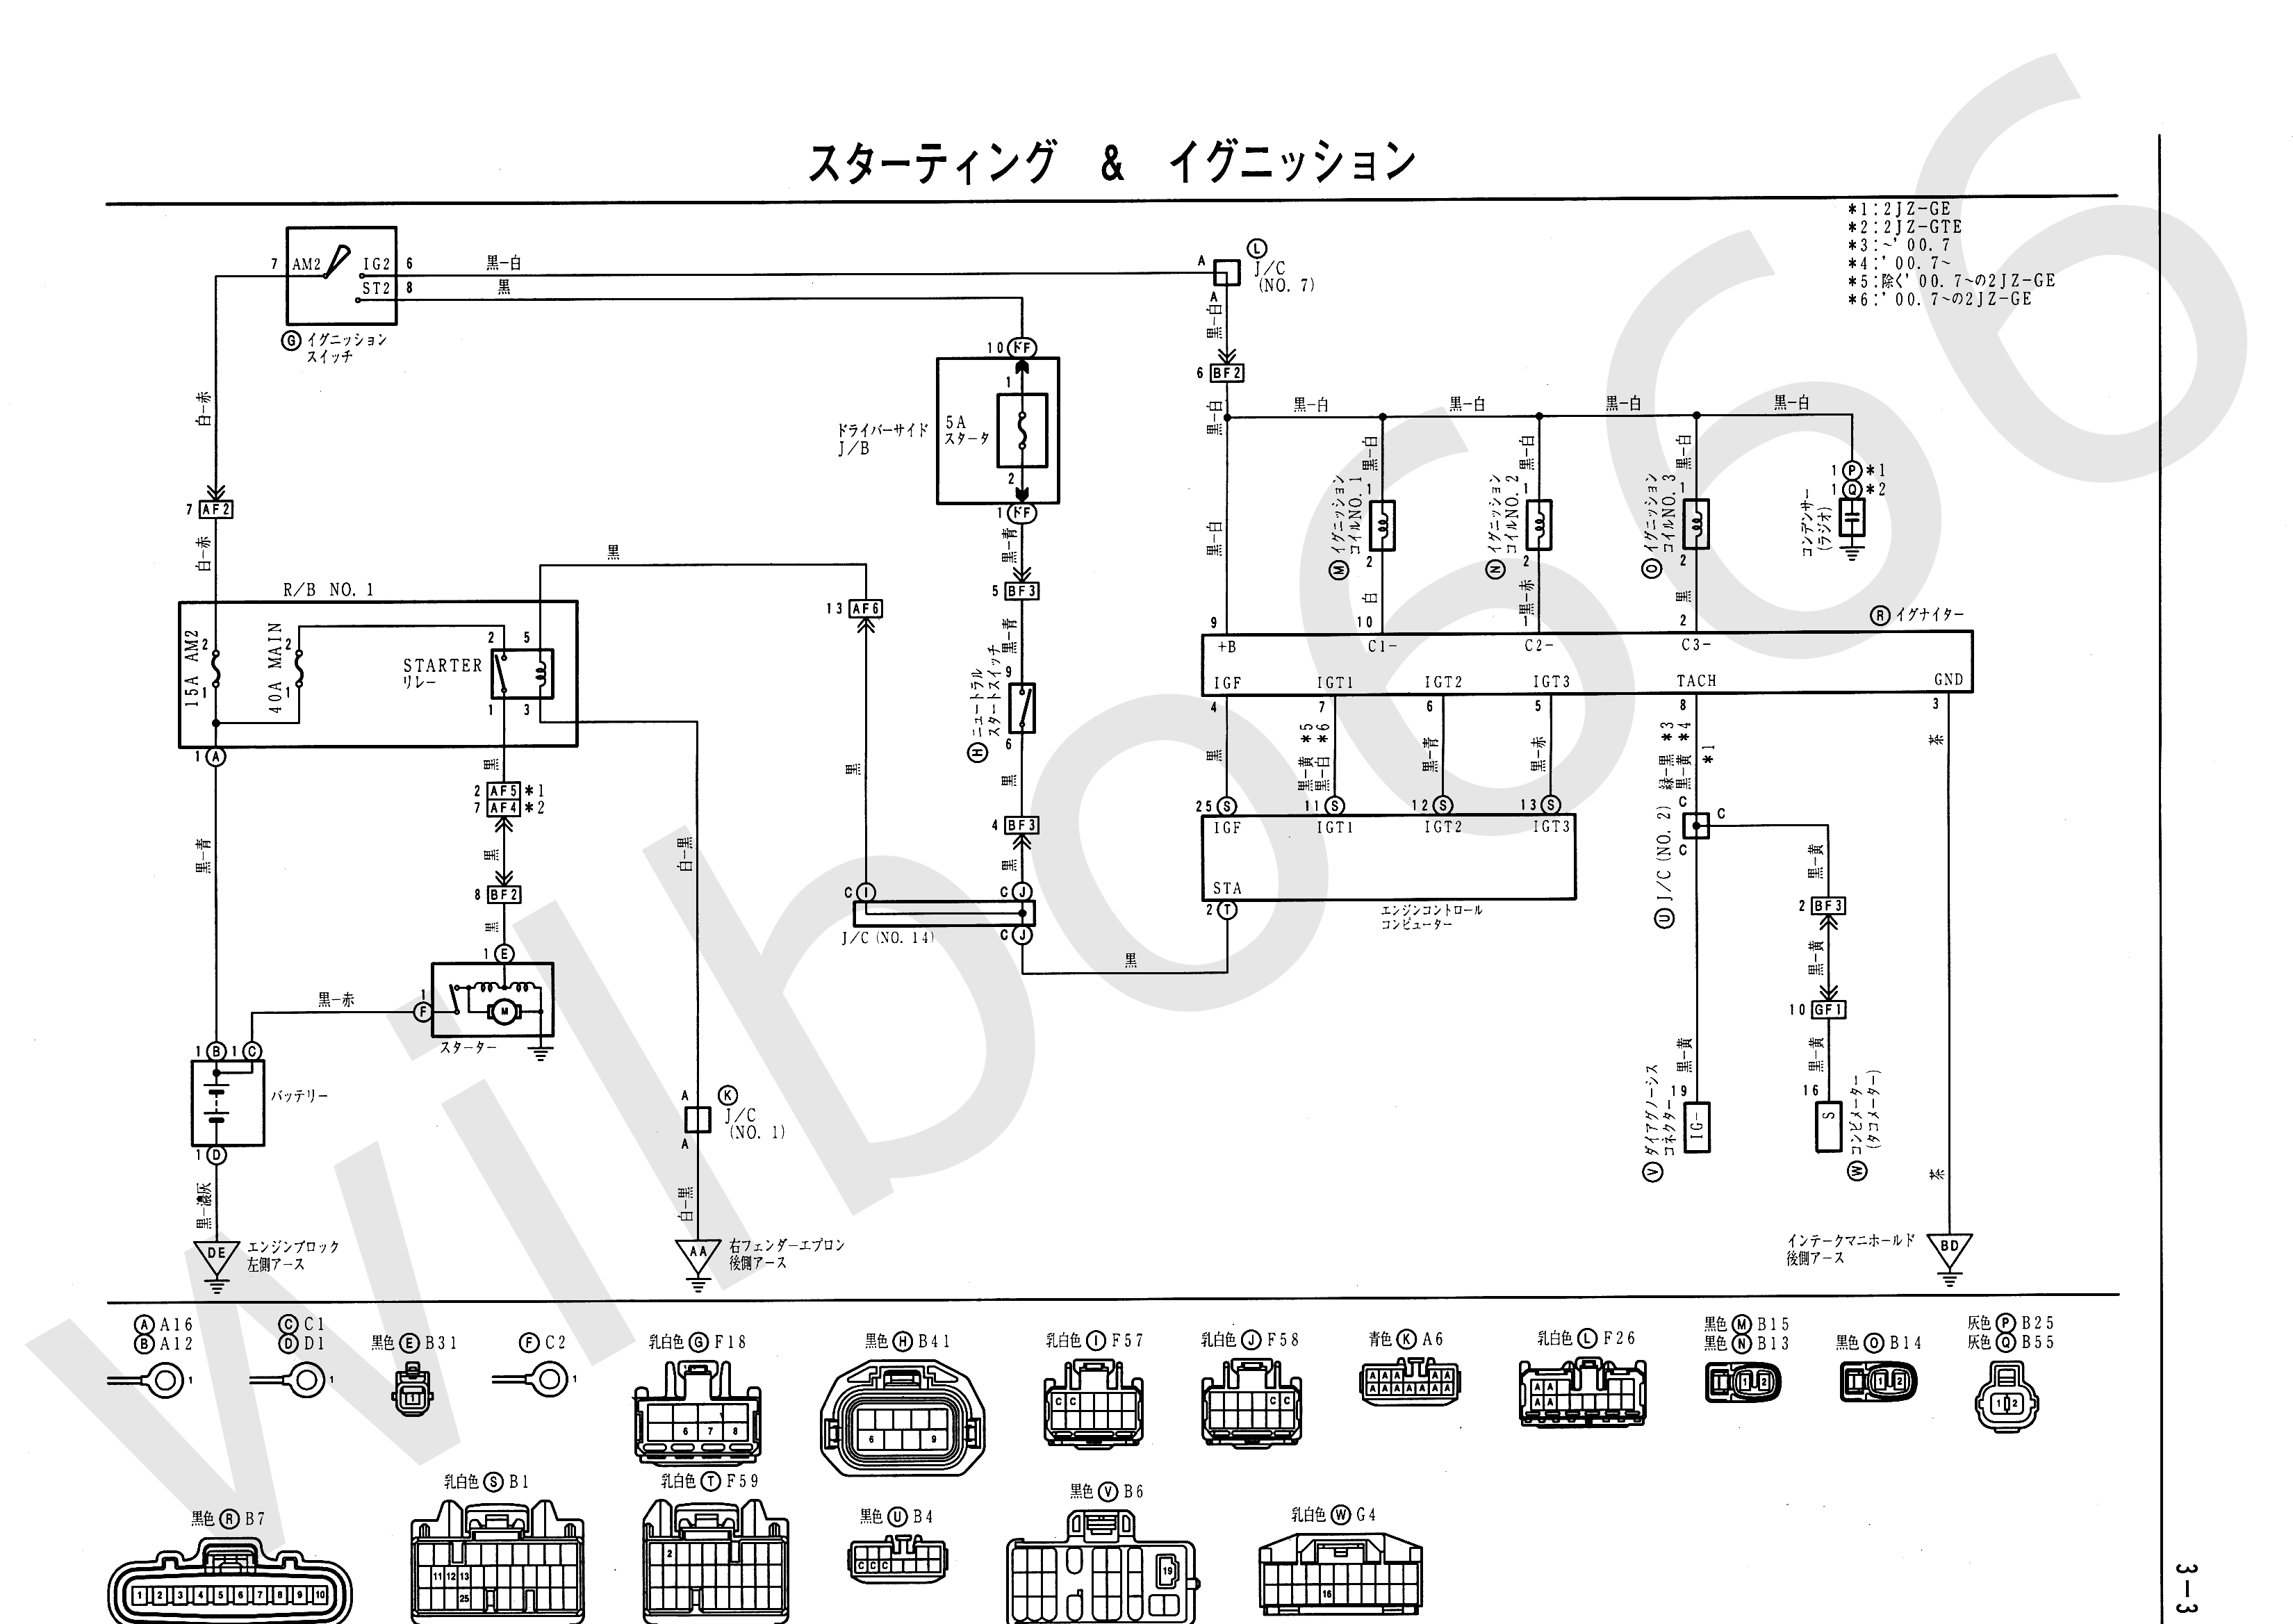 Wilbo666 2jz Gte Vvti Jzs161 Aristo Engine Wiring 5 0 Fuel Injection Harness Toyota Diagrams